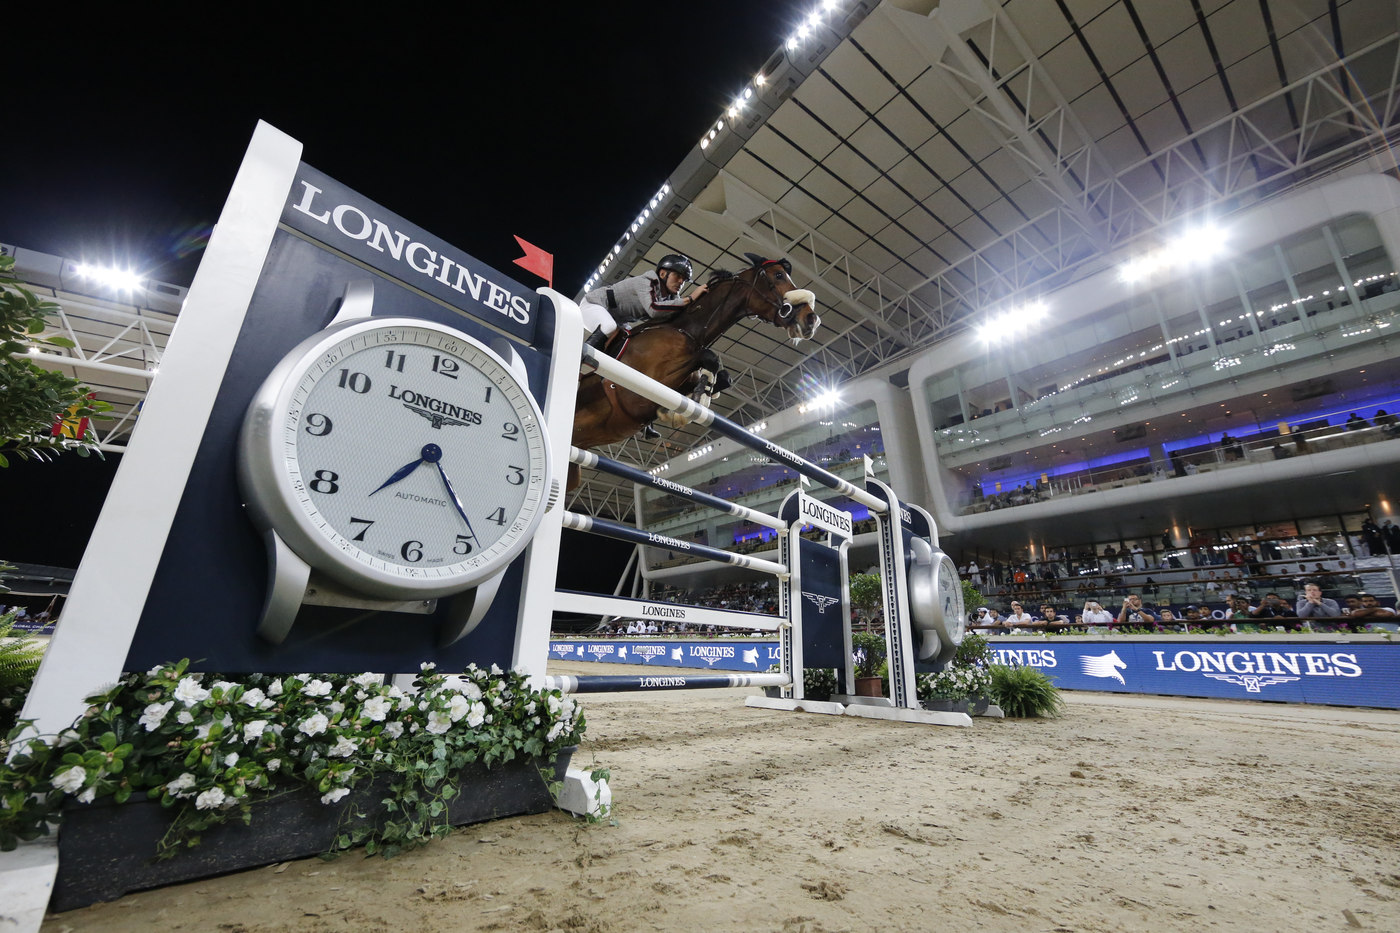 Longines Show Jumping Event: Ben Maher claimed stunning victory at the 2018 Longines Global Champions Tour of Doha 5